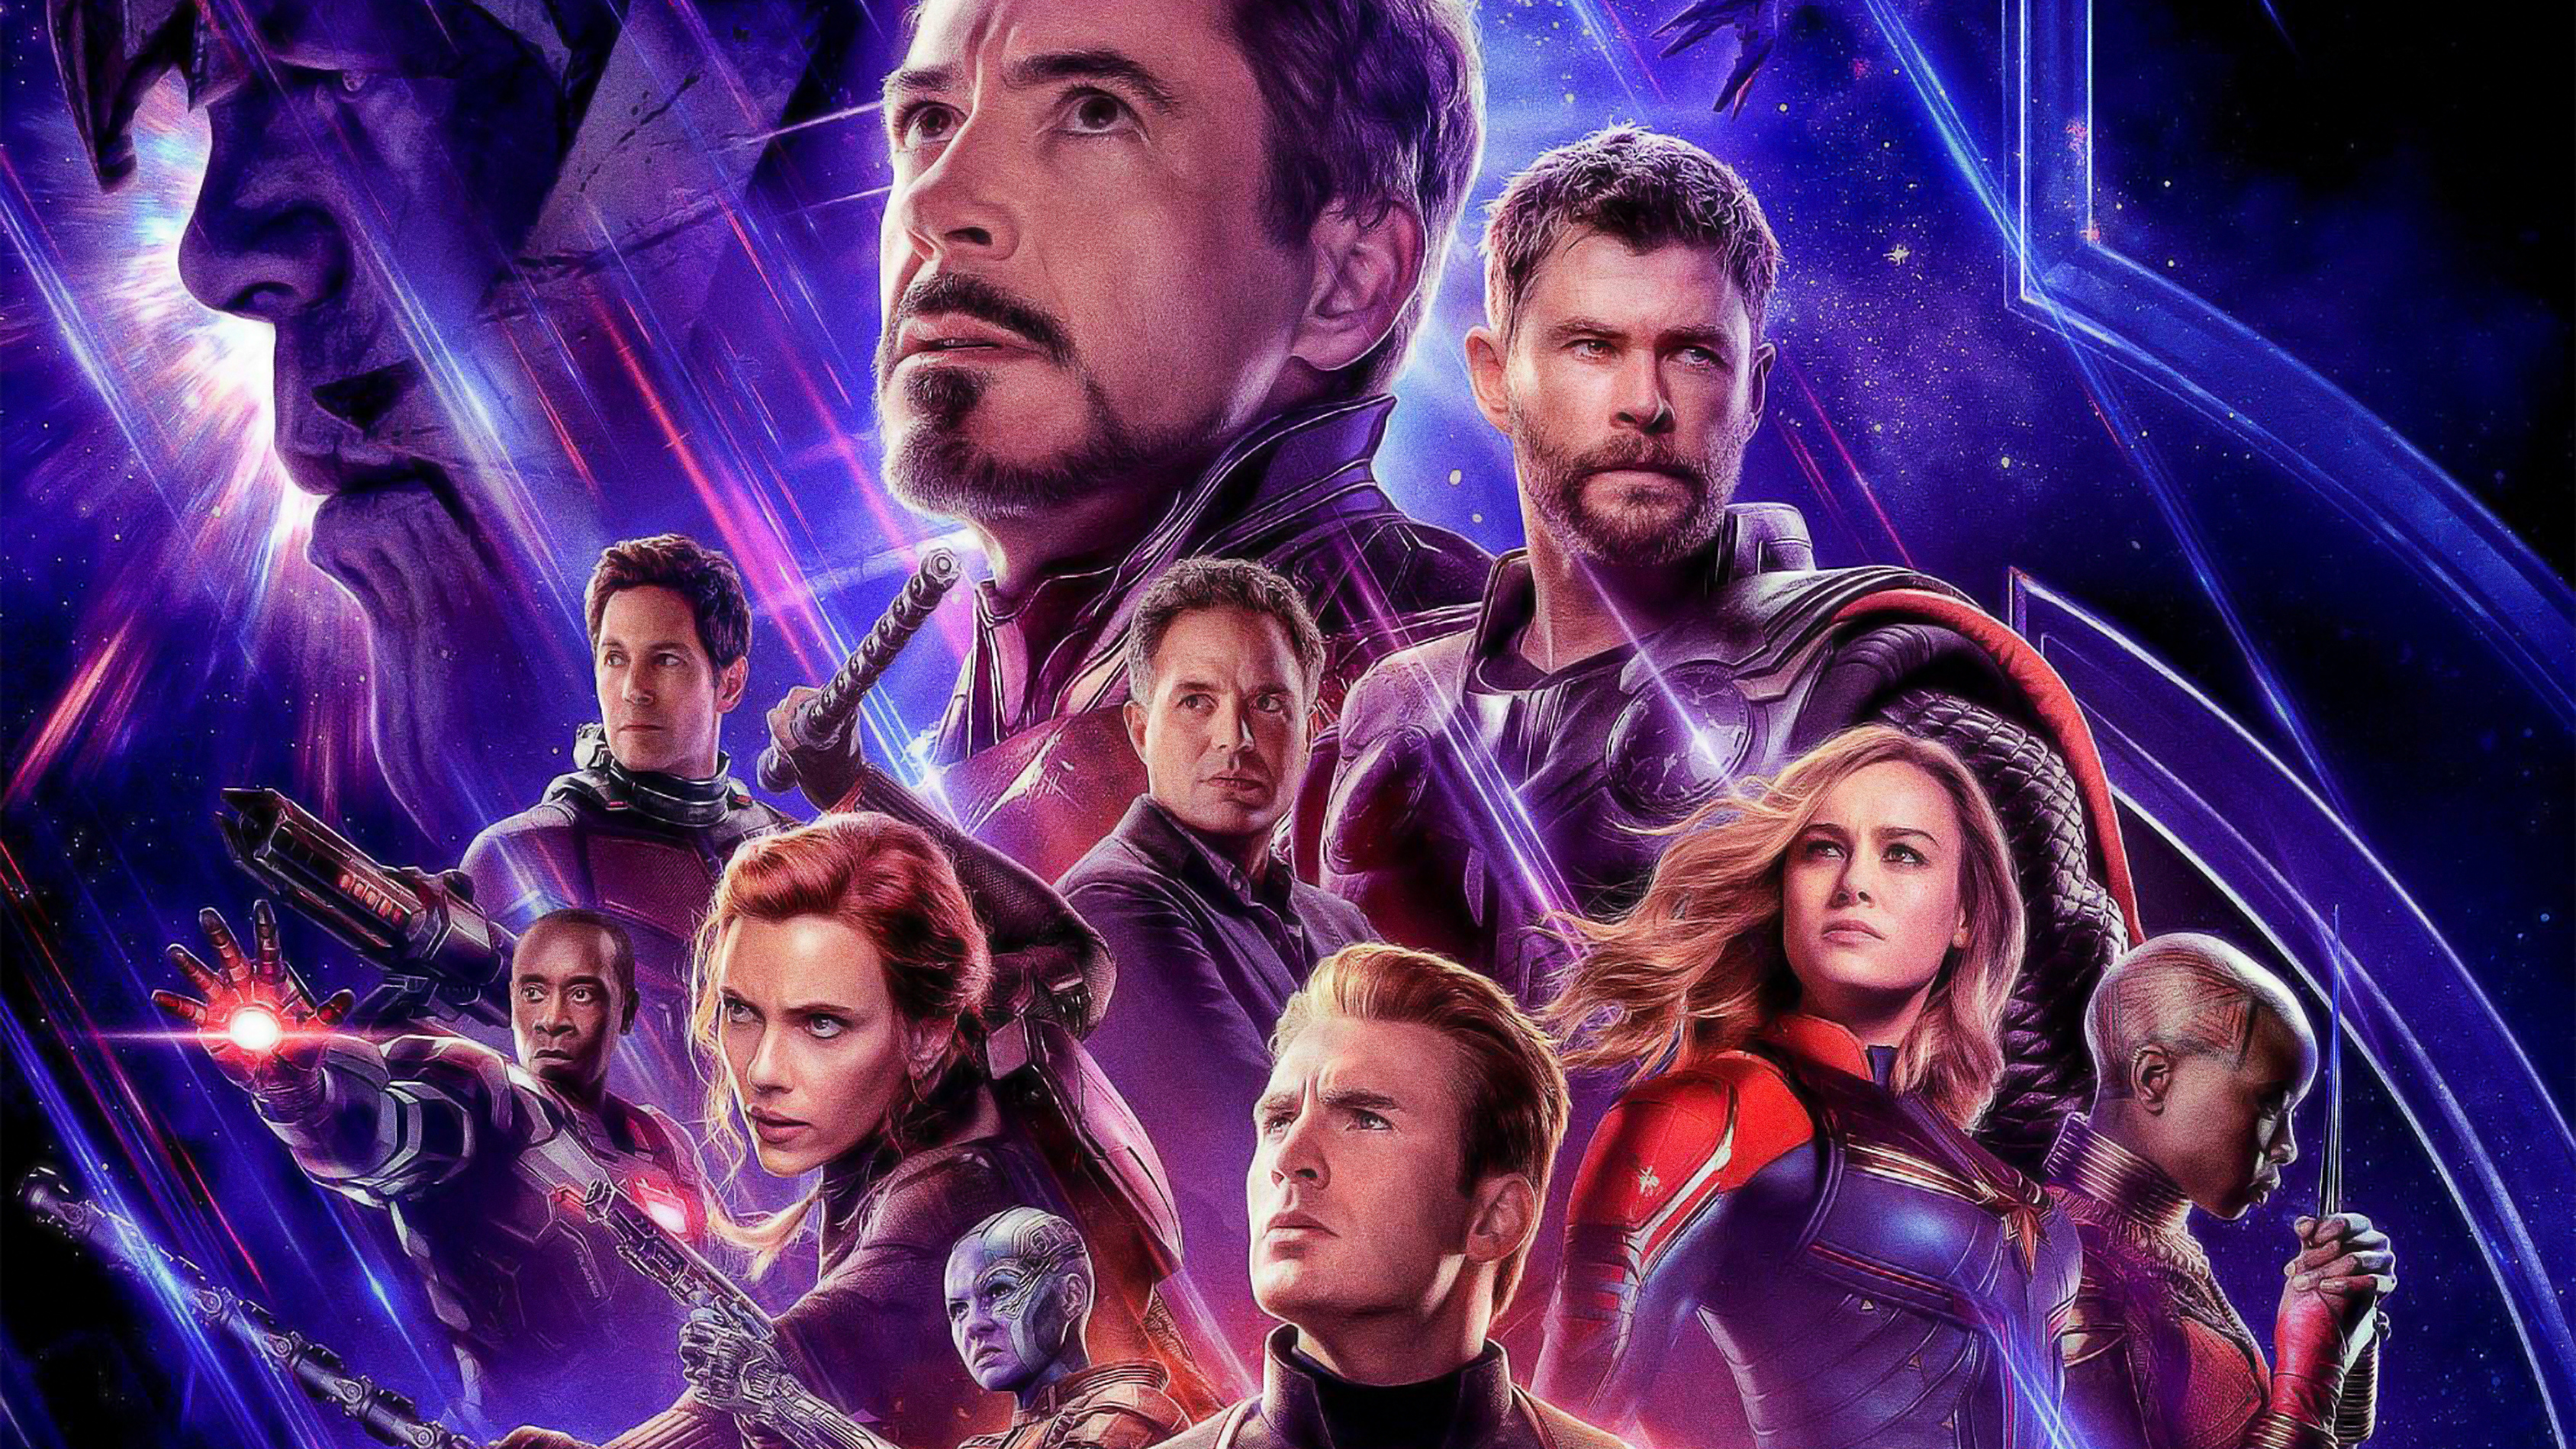 Movie Poster 2019: Avengers Endgame 2019 Official Poster, HD Movies, 4k